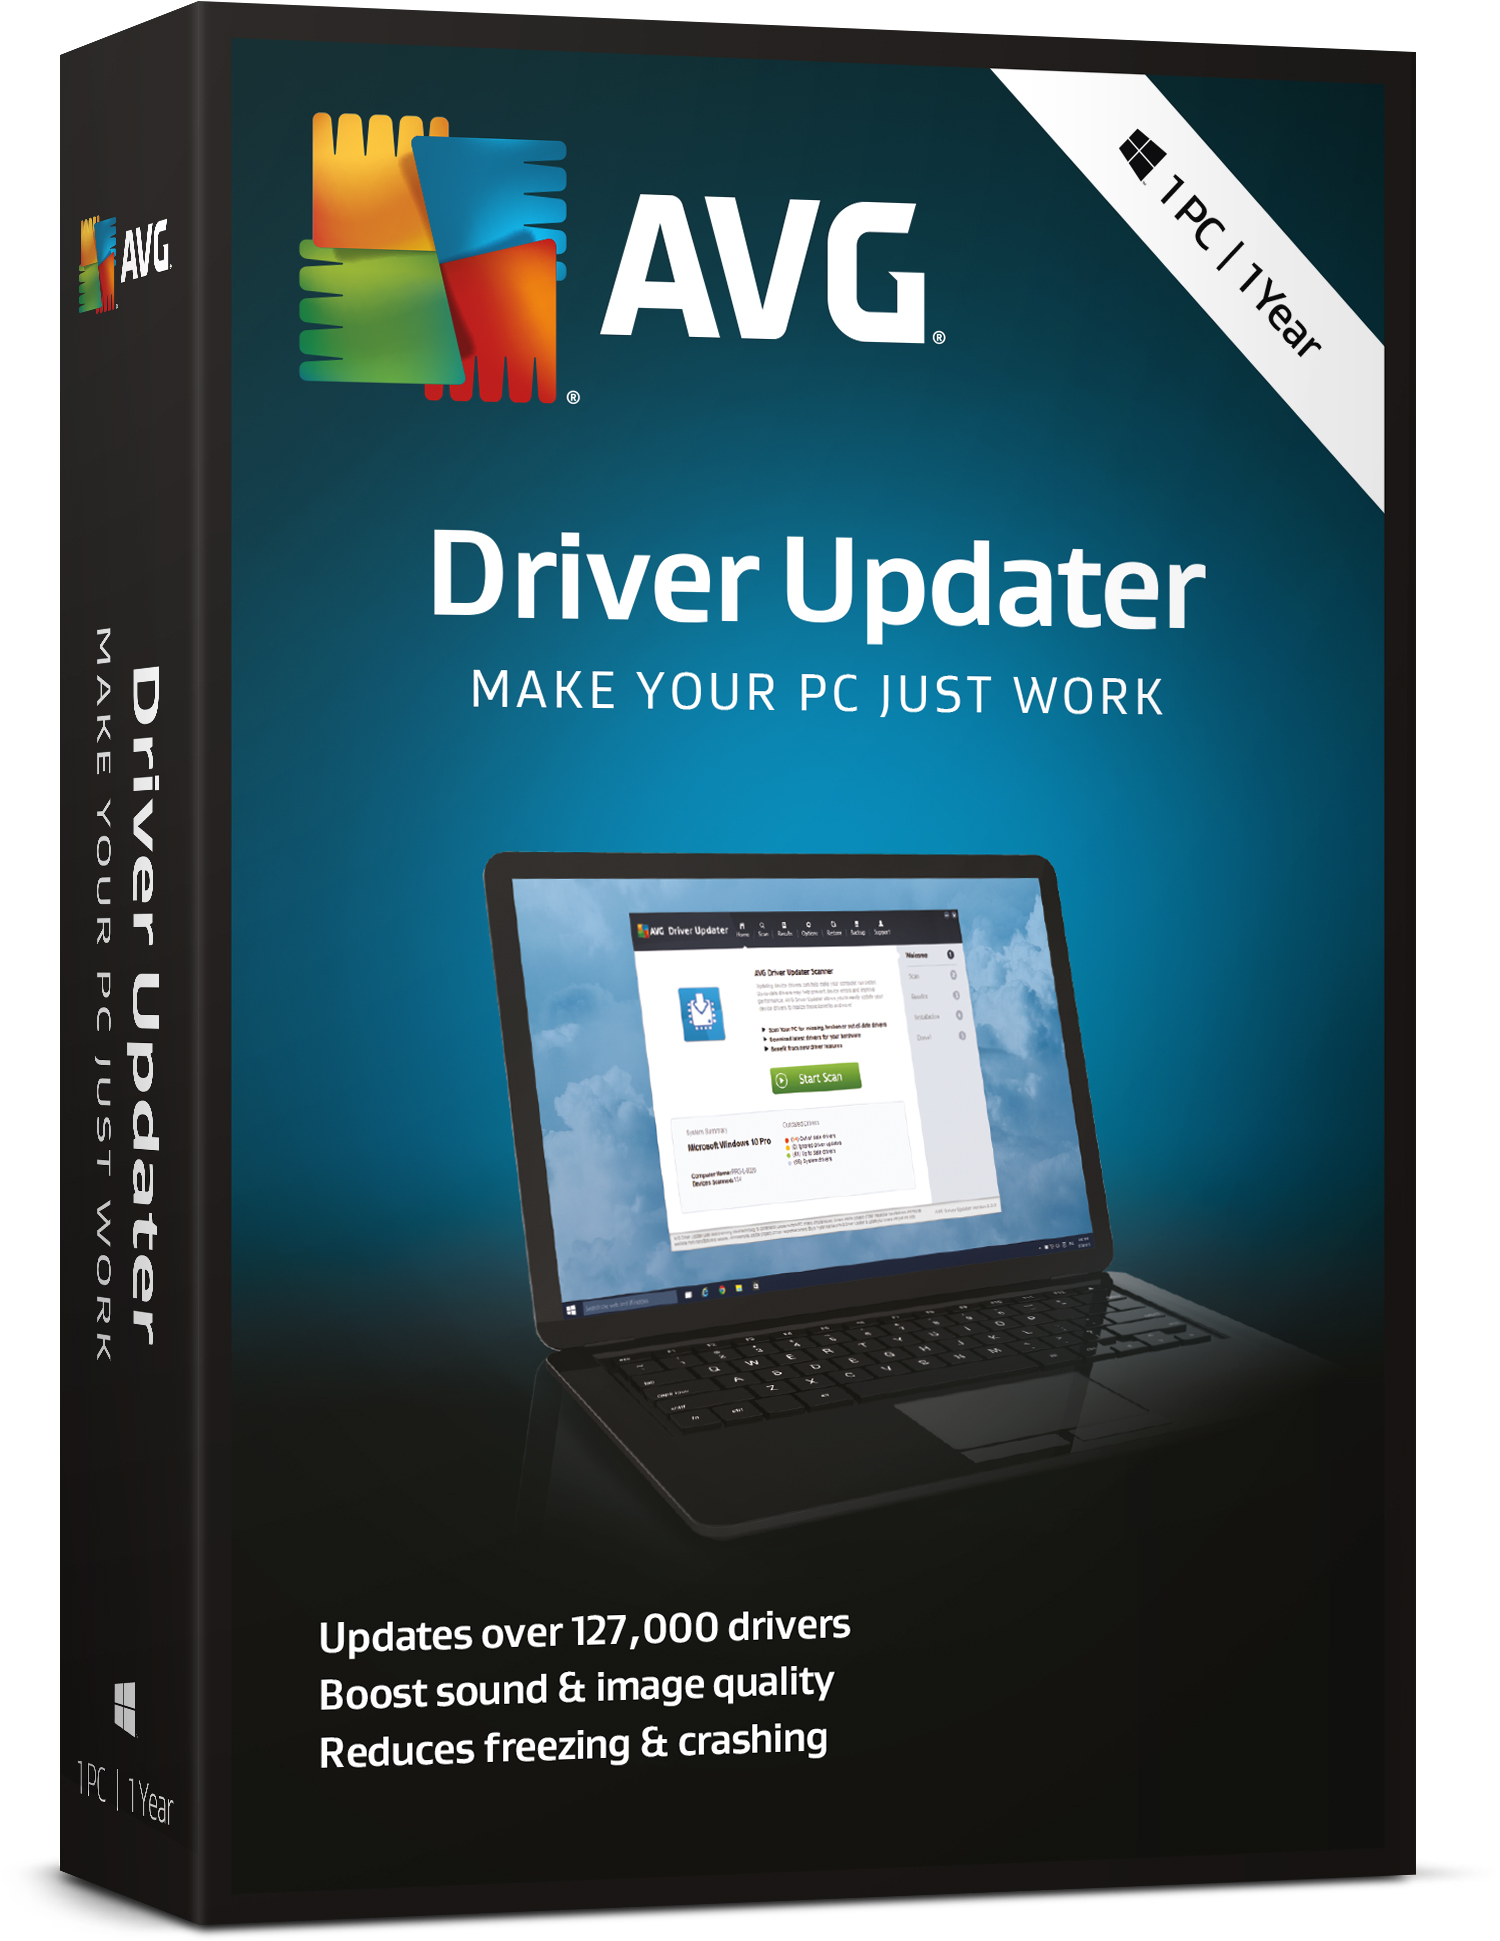 AVG Driver Updater 1 Computer 1 Year License